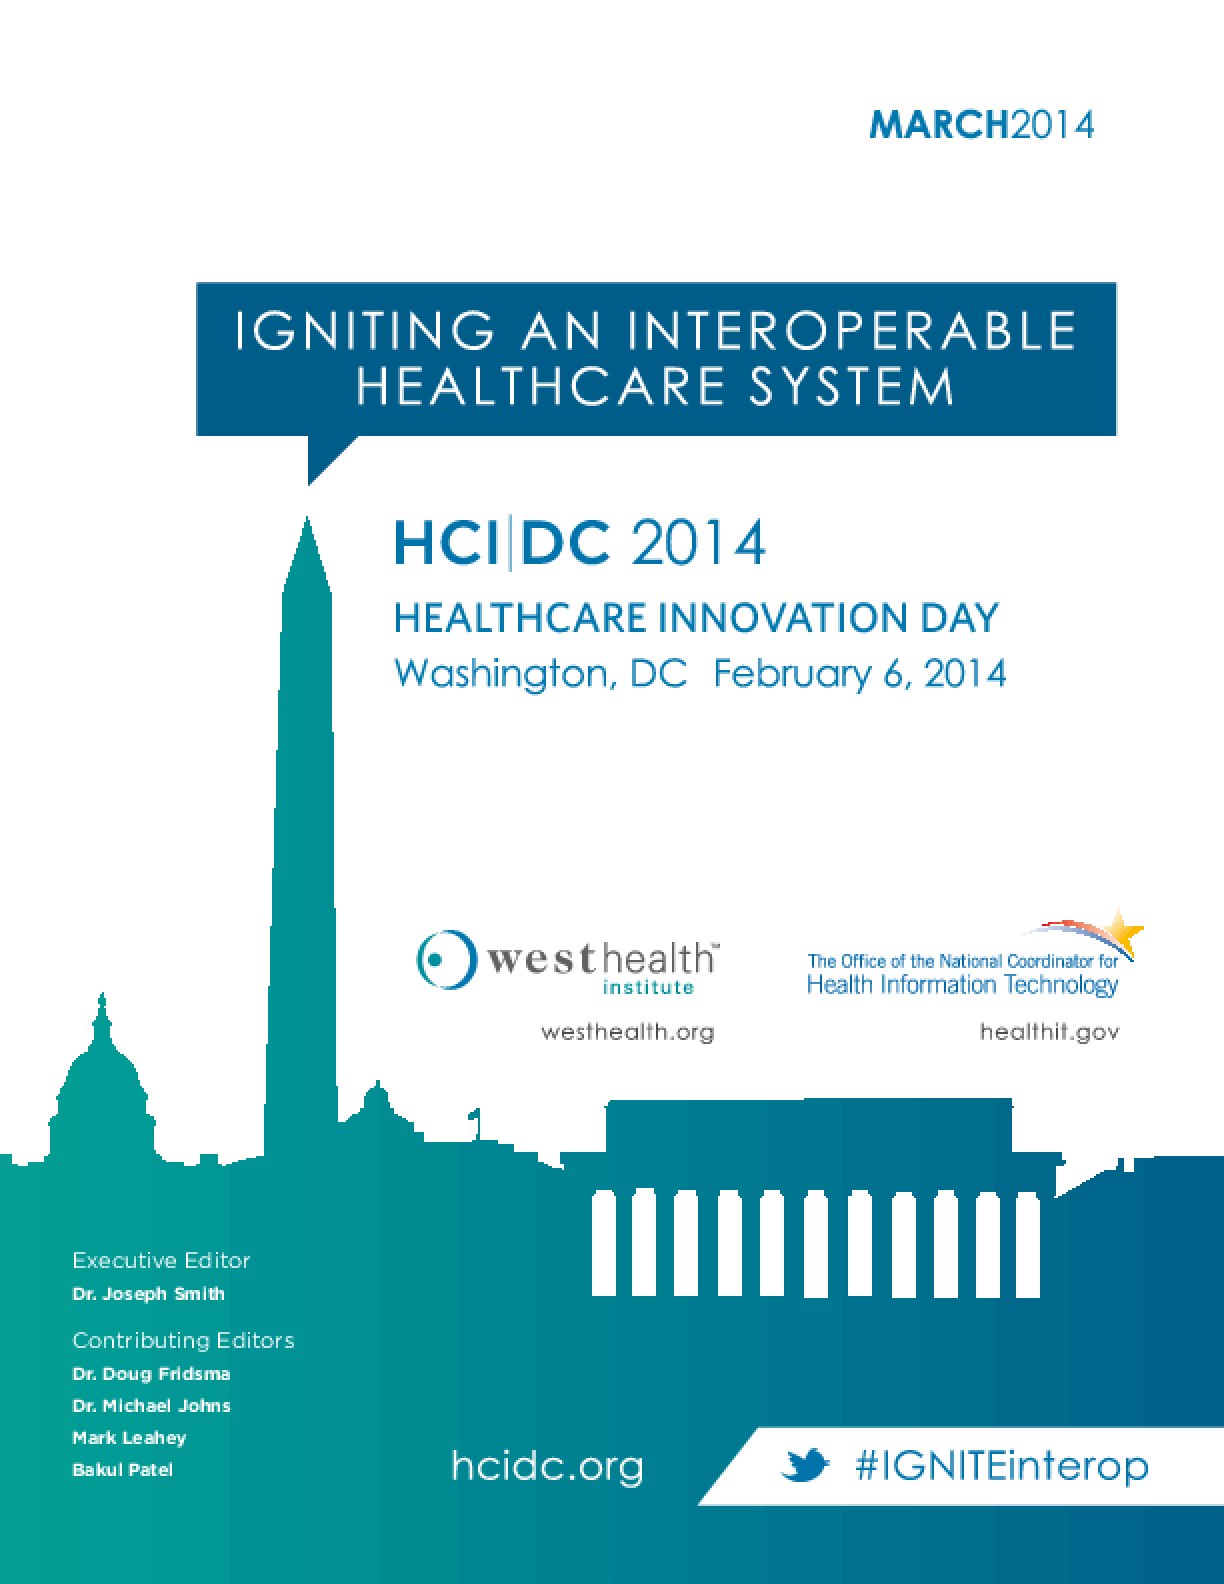 Igniting an Interoperable Healthcare System: HCI|DC 2014 Healthcare Innovation day